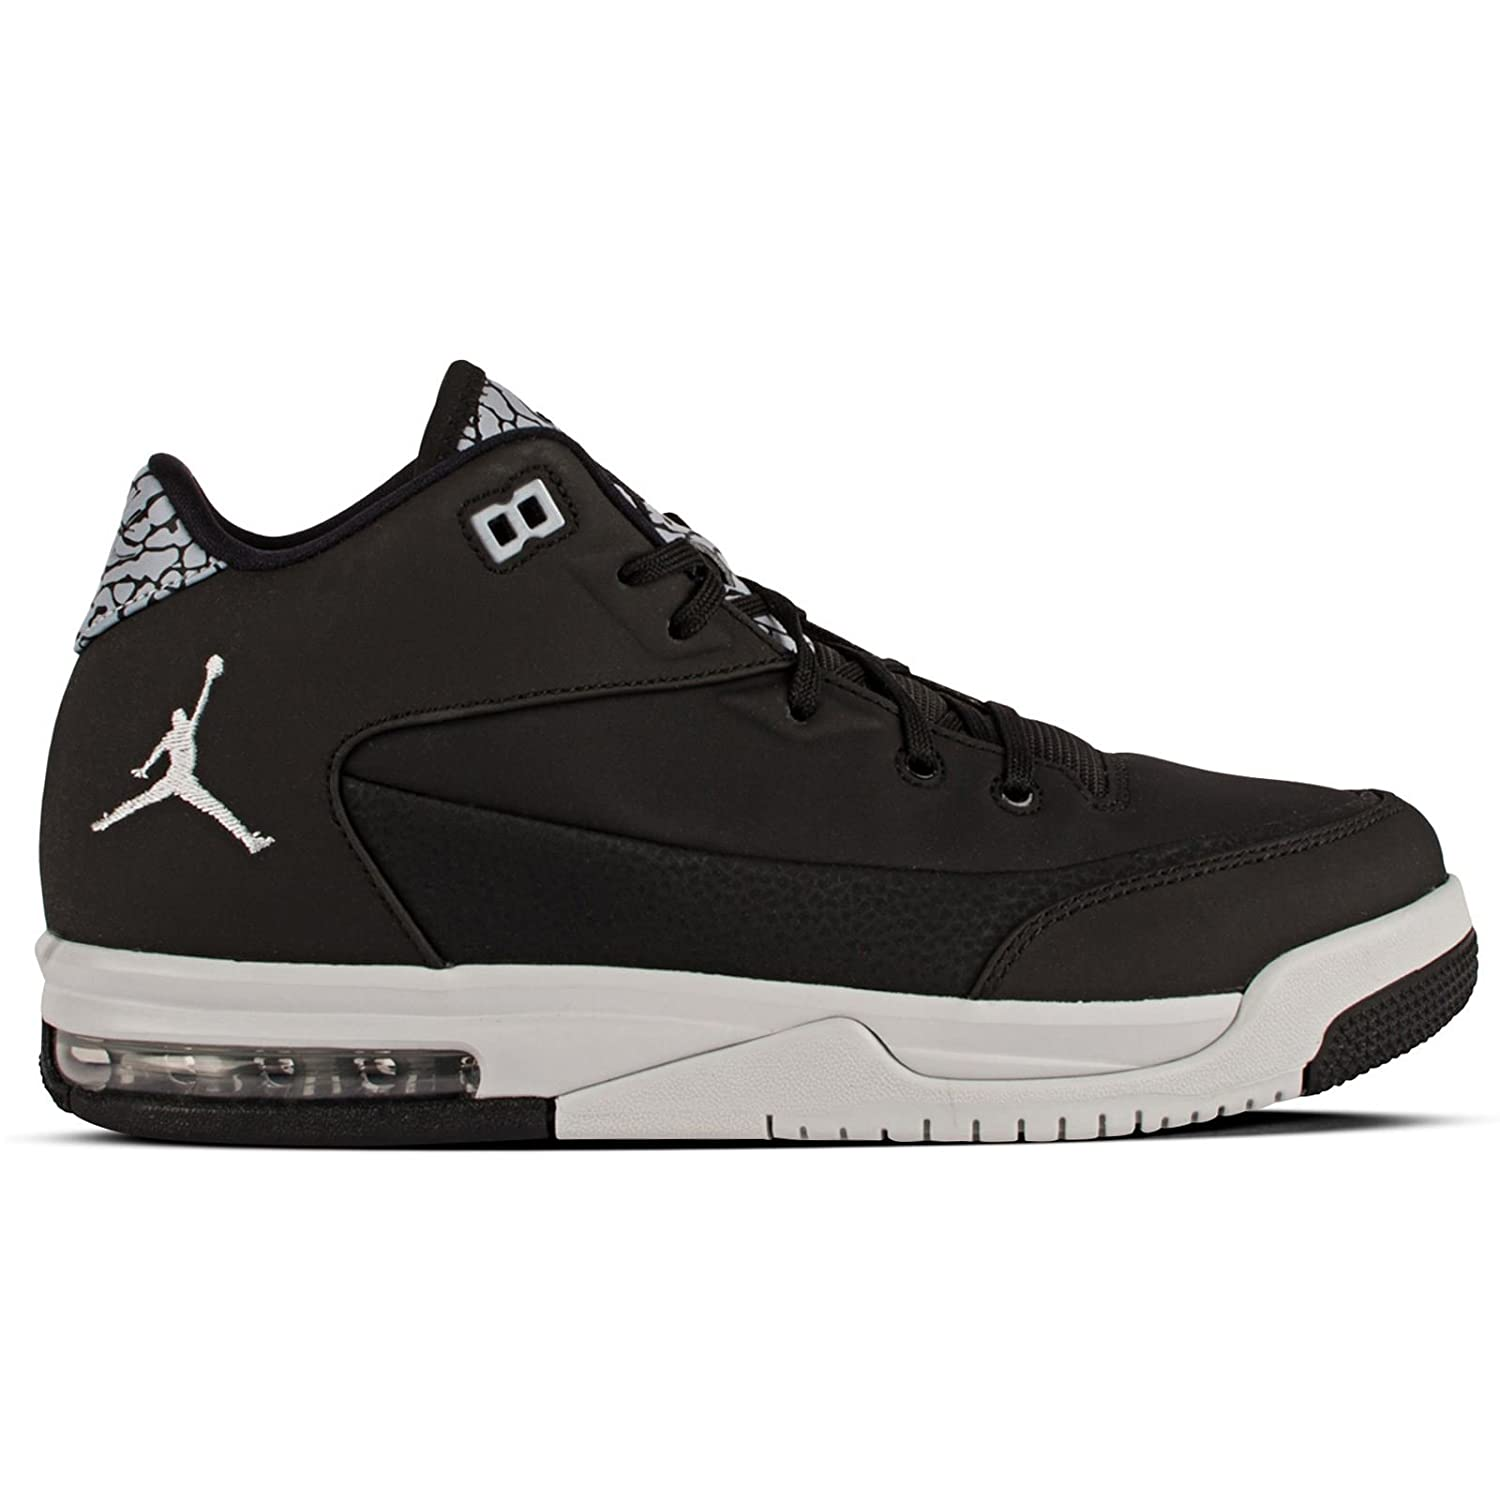 6a19c9c2b542 Nike Men s Jordan Flight Origin 3 bg Basketball Shoes